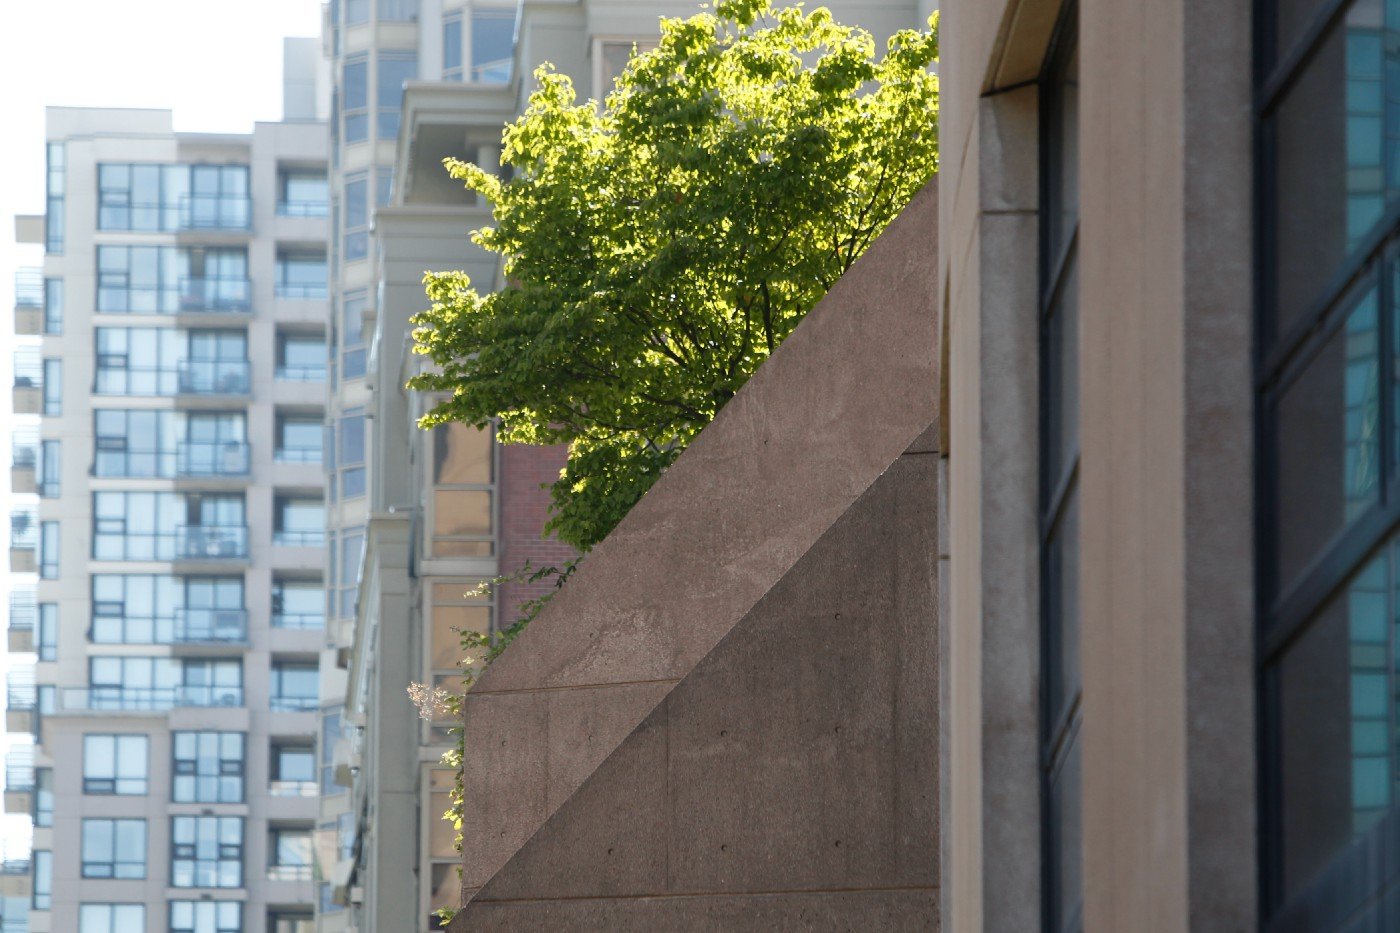 Some greenery is poking out over the concrete balcony of the Vancouver downtown library, which is surrounded by other buildin